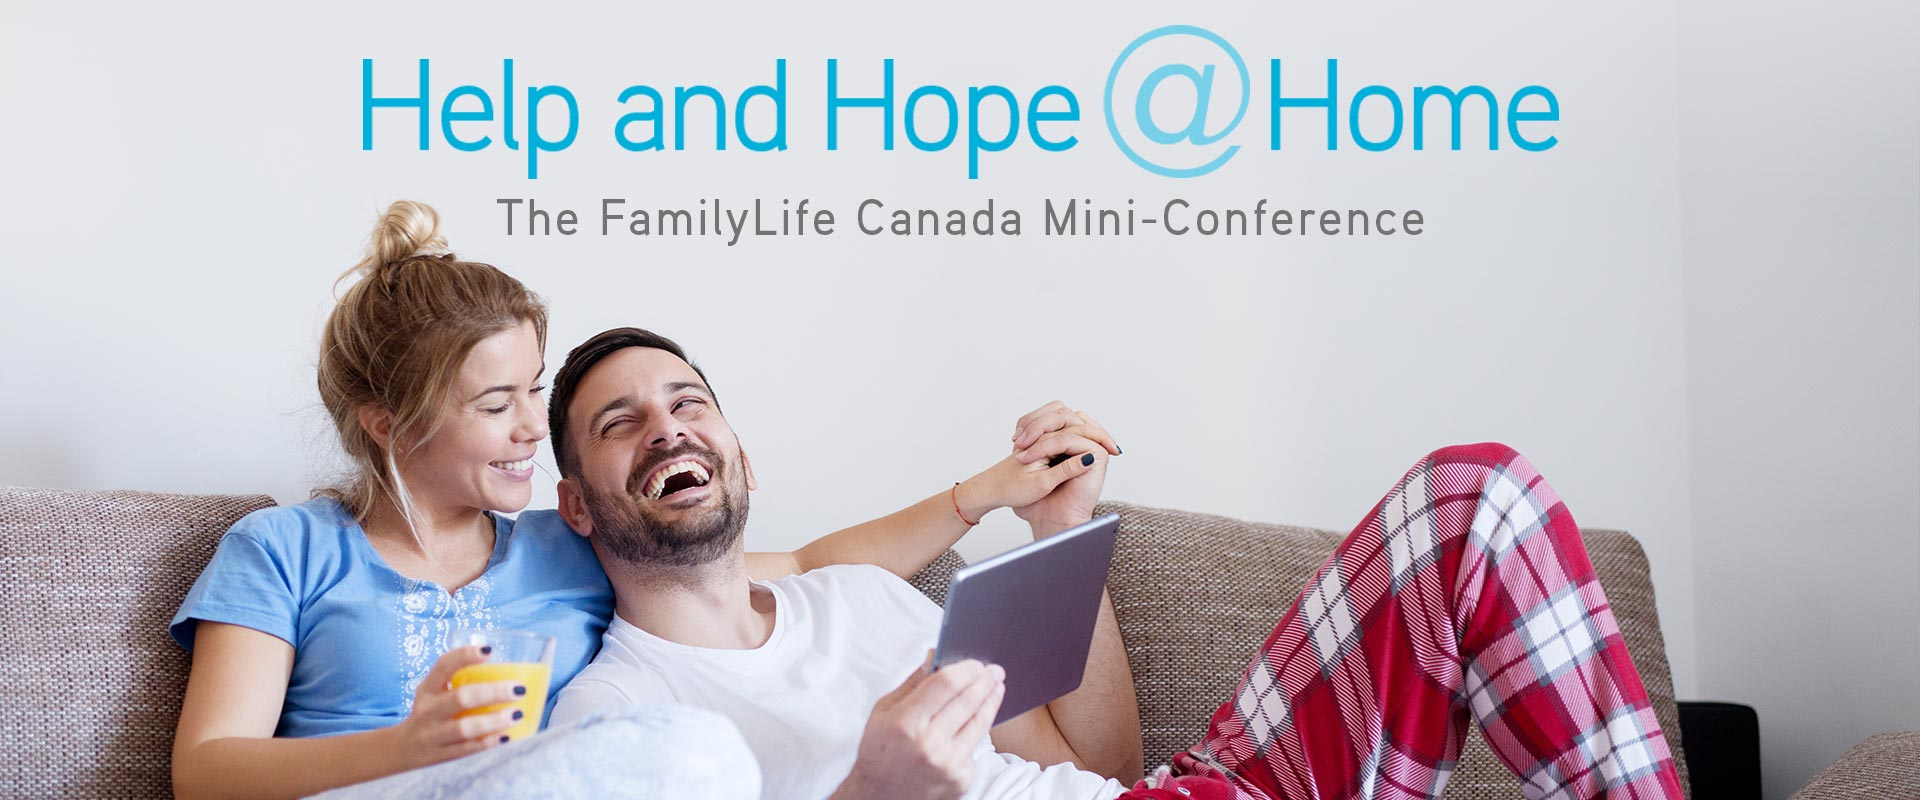 FamilyLife Canada Help and Hope @ Home Mini-Conference